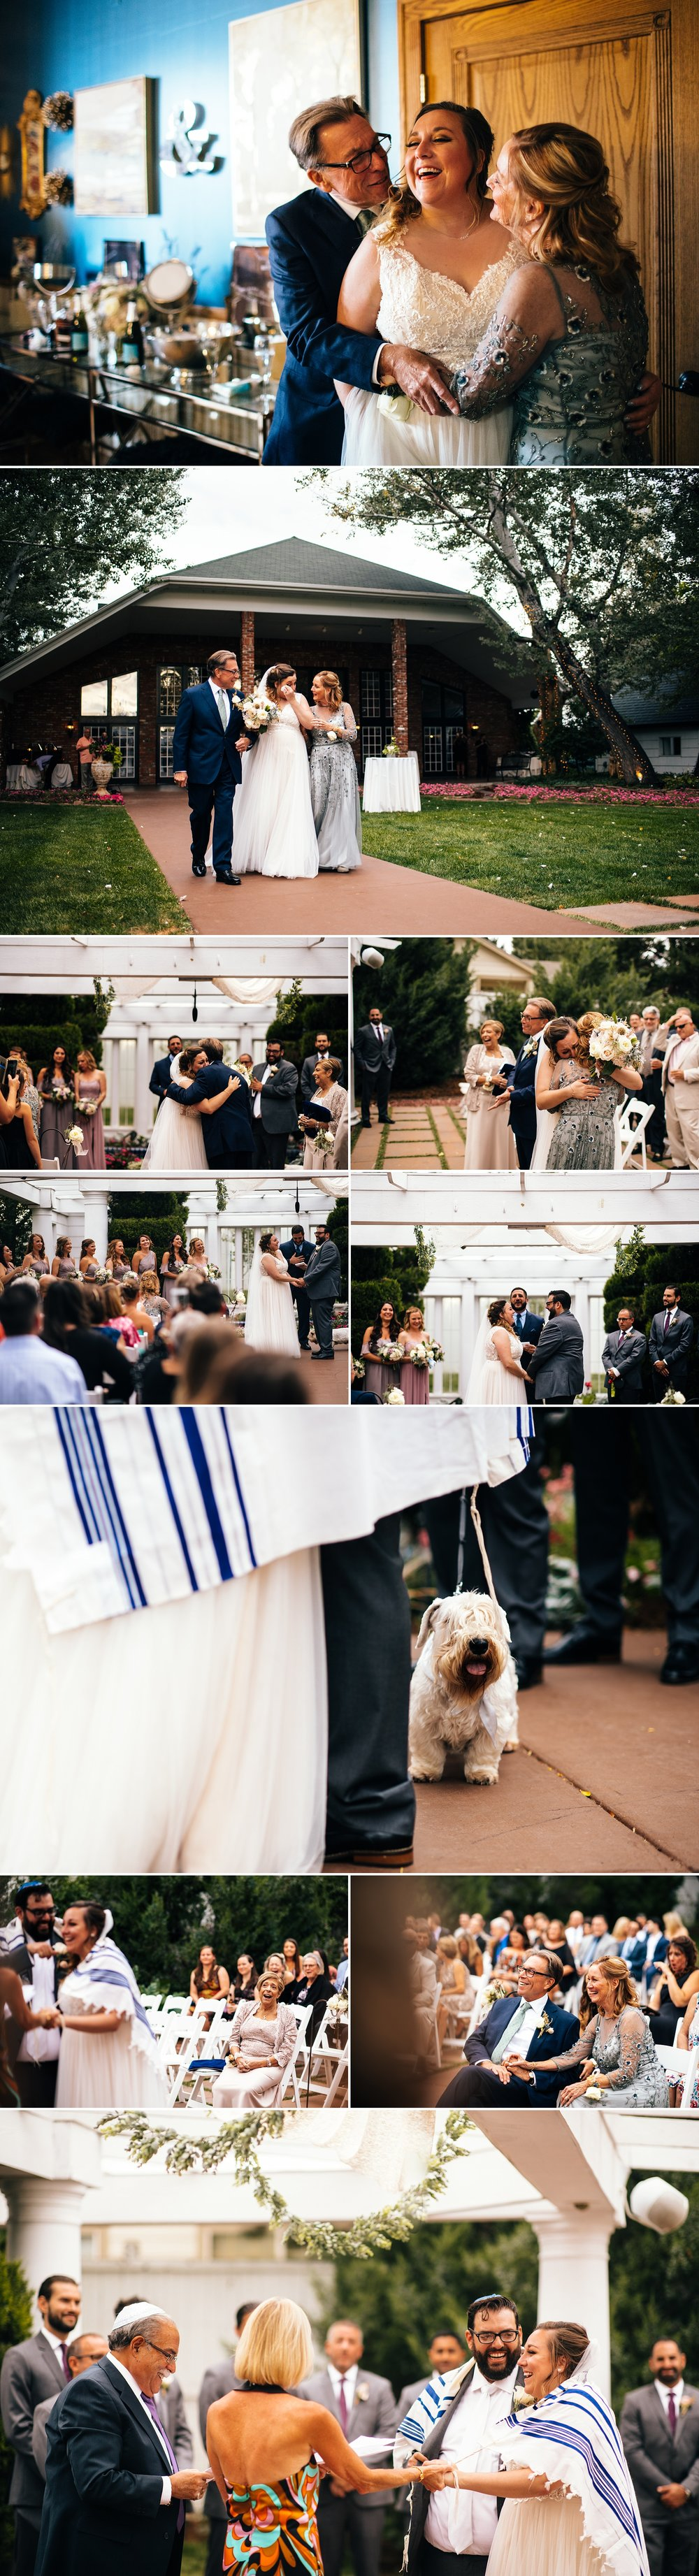 Gloria+Ross-Lionsgate-Event-Center-Wedding-0030_WEB.jpg